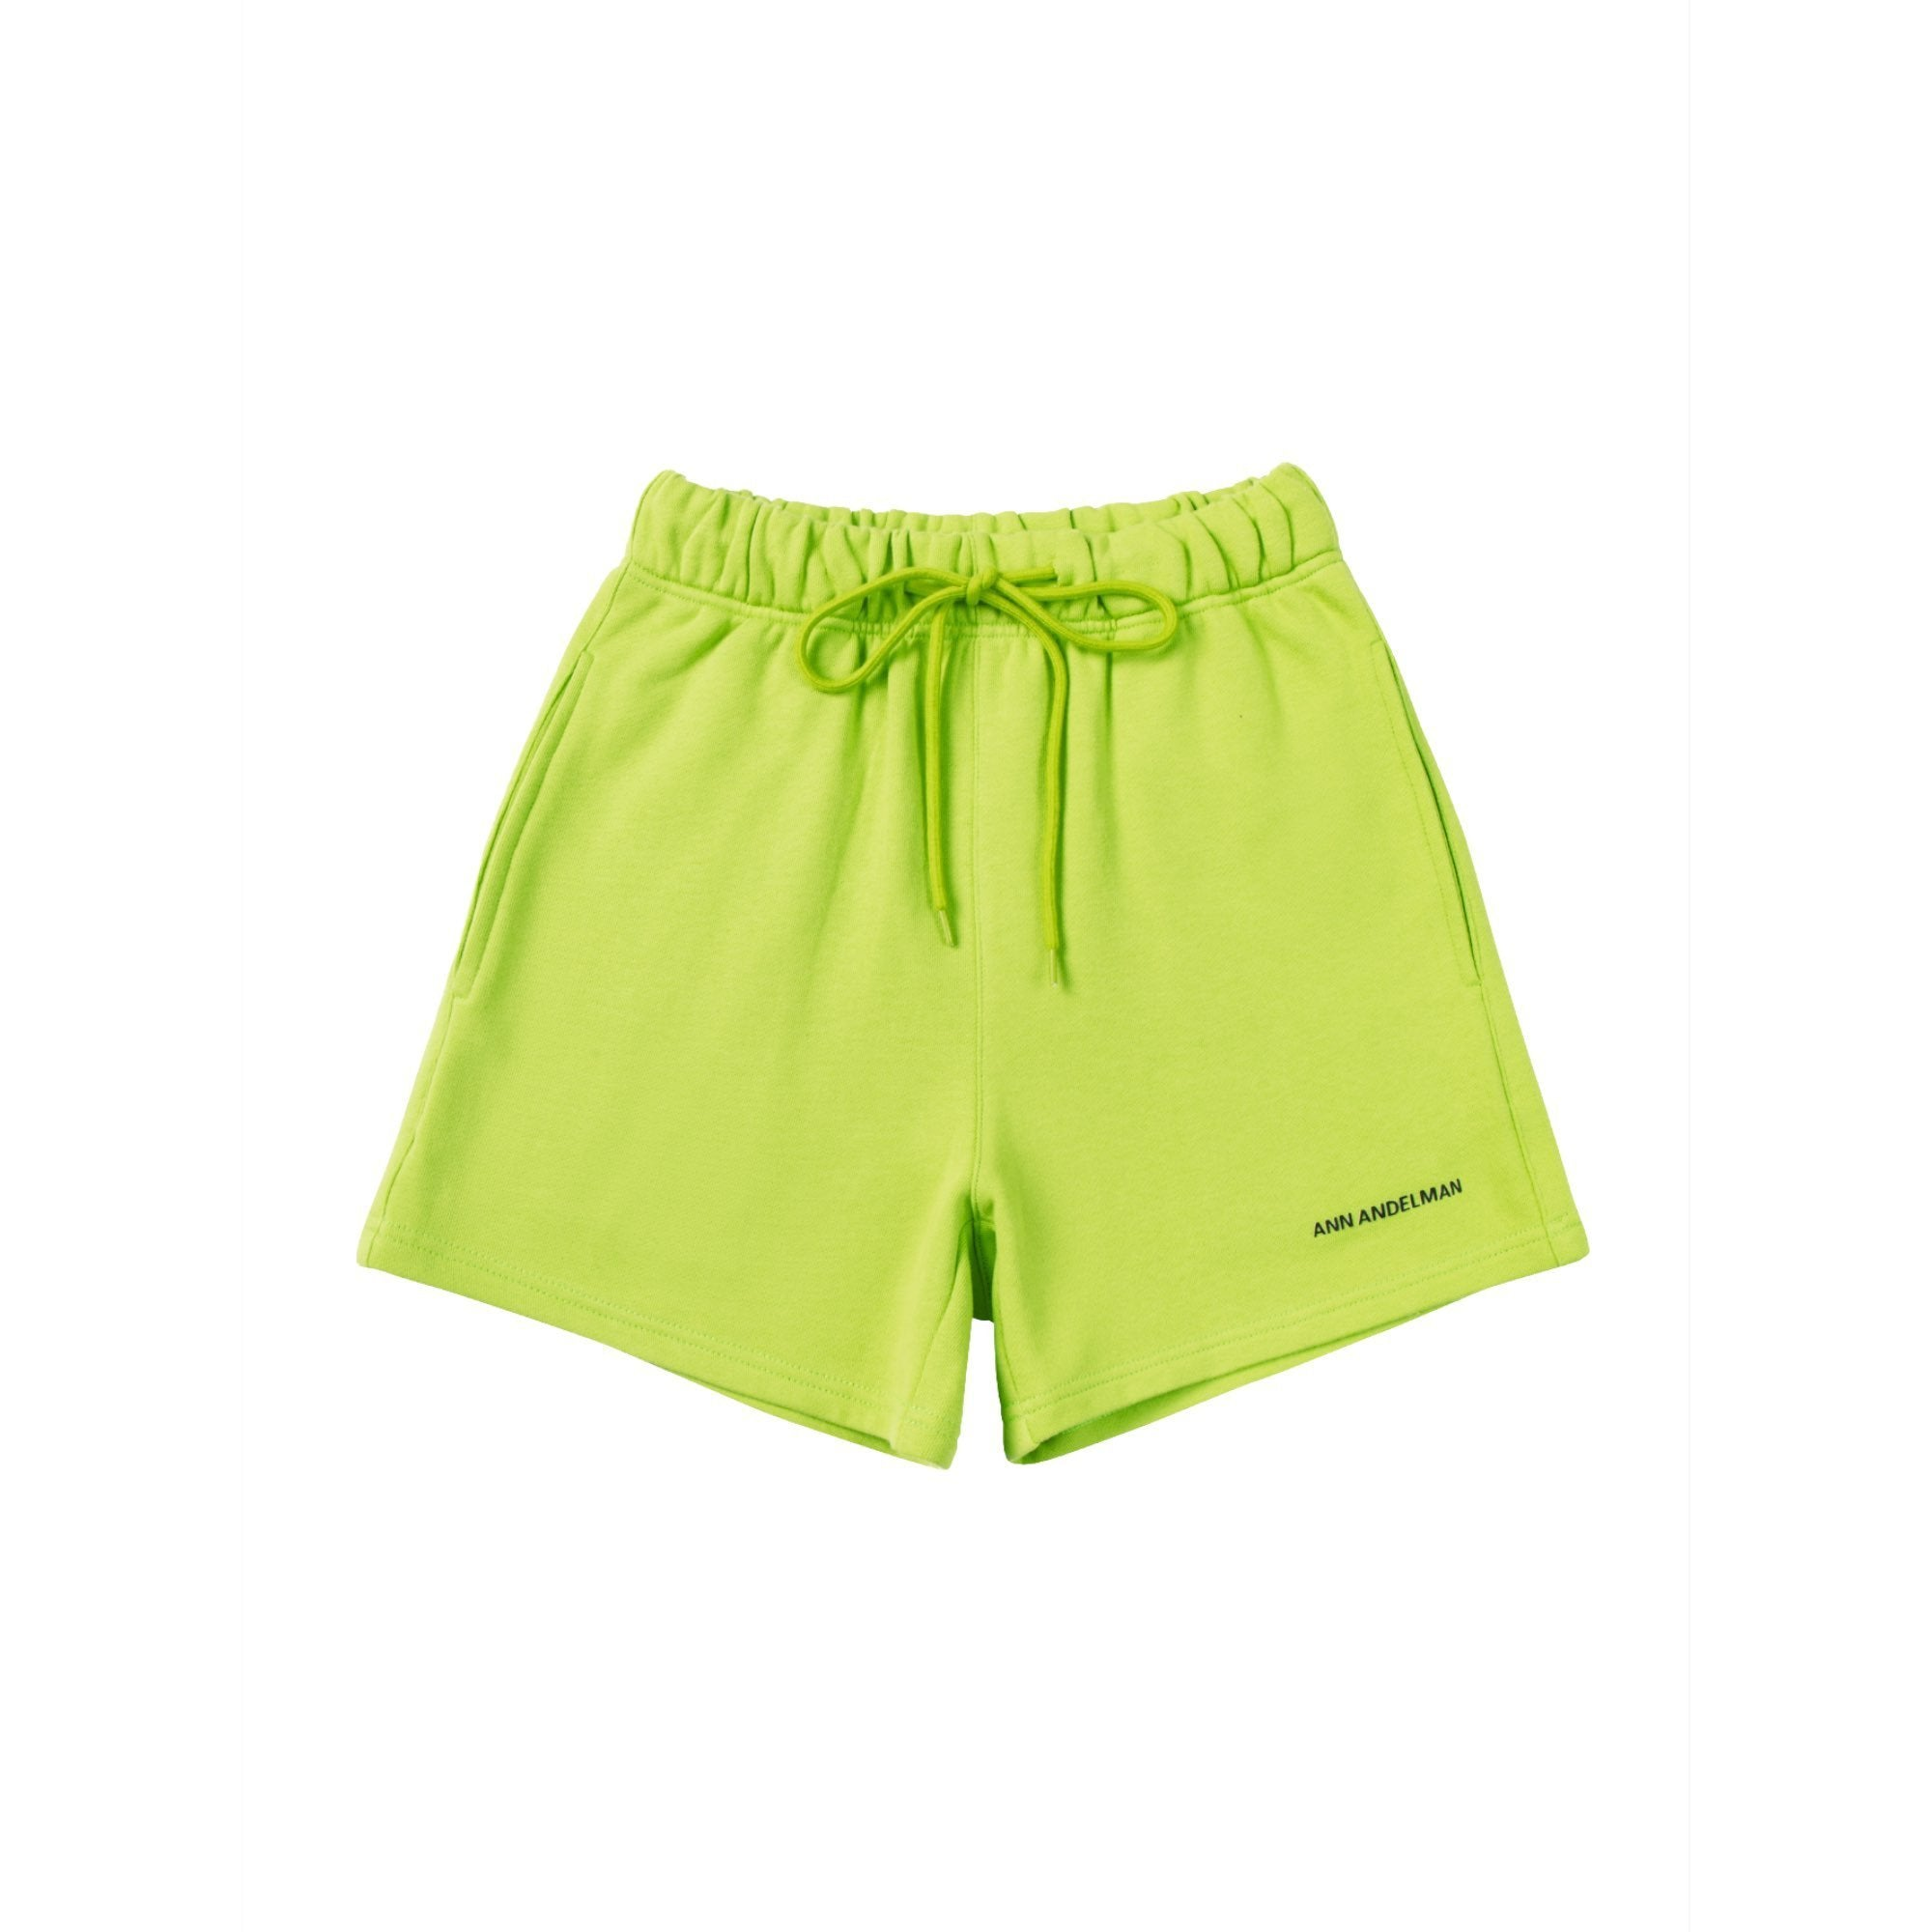 ANN ANDELMAN Yellow Small Logo Shorts | MADA IN CHINA